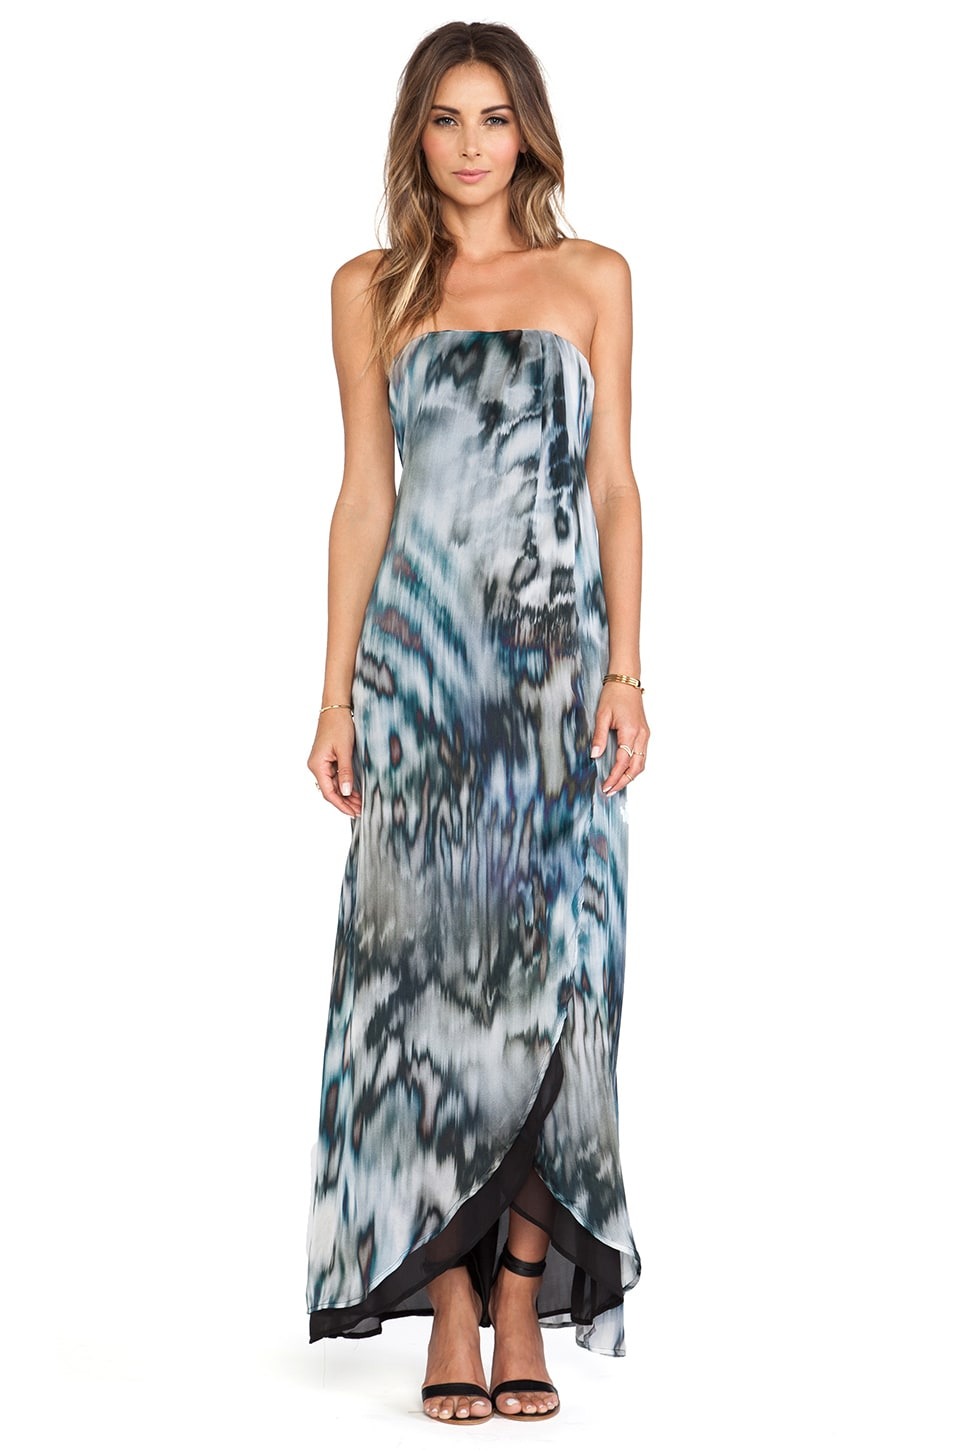 Helena Quinn Karin Maxi Dress in Weather Print